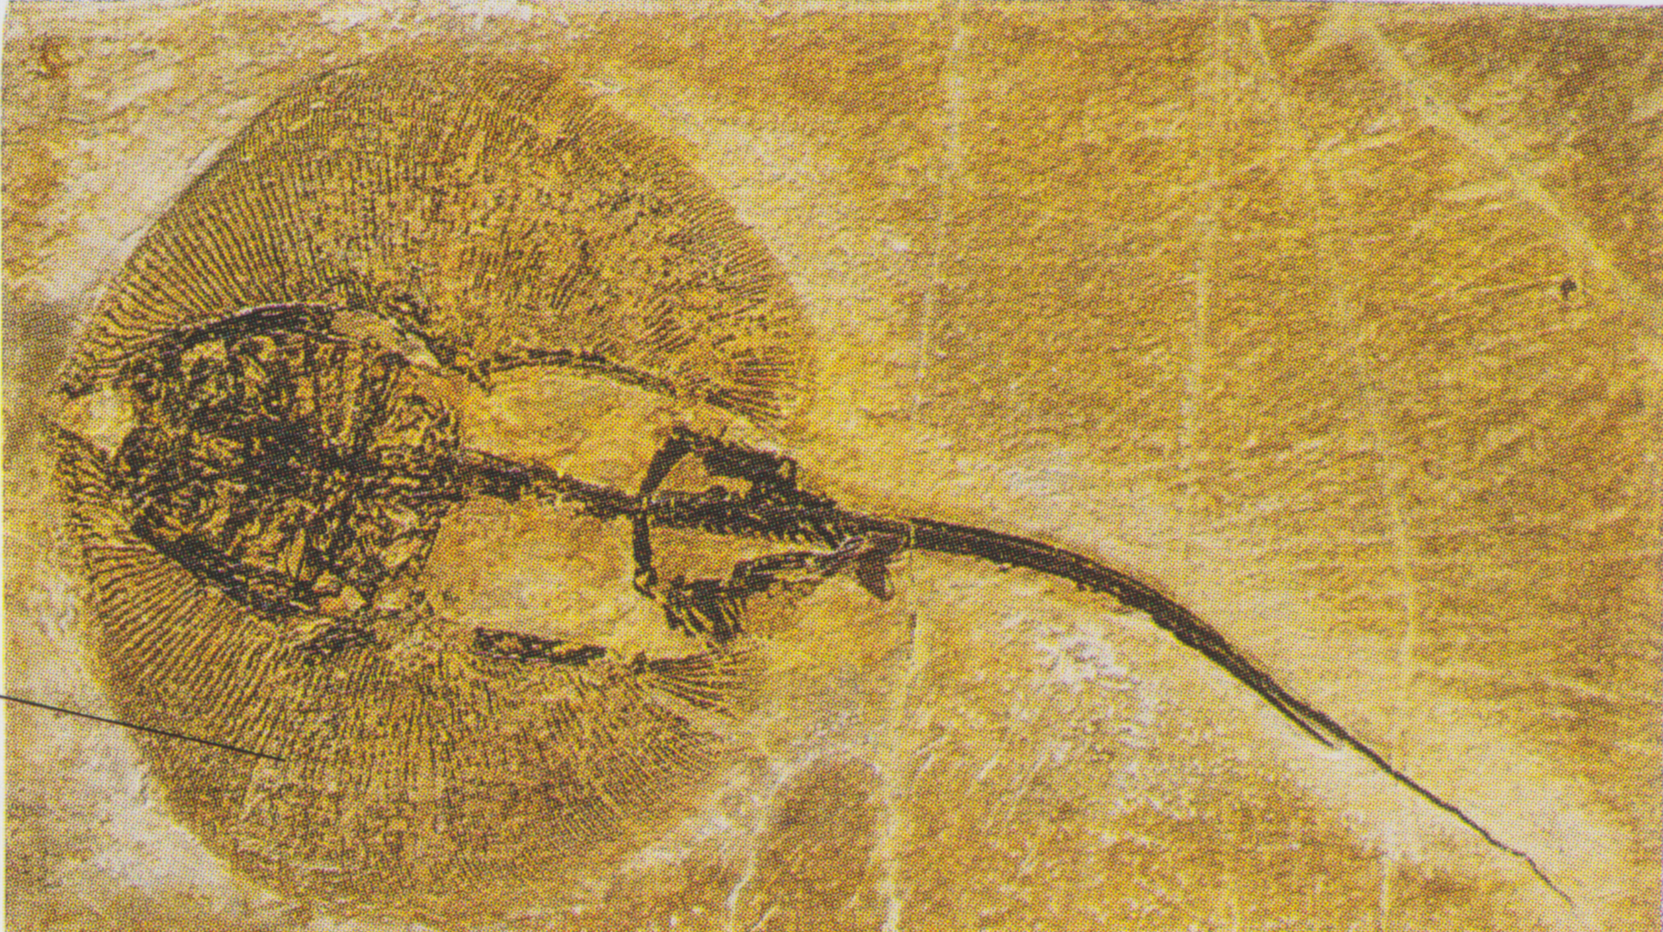 Fossil of a stingray like fish.